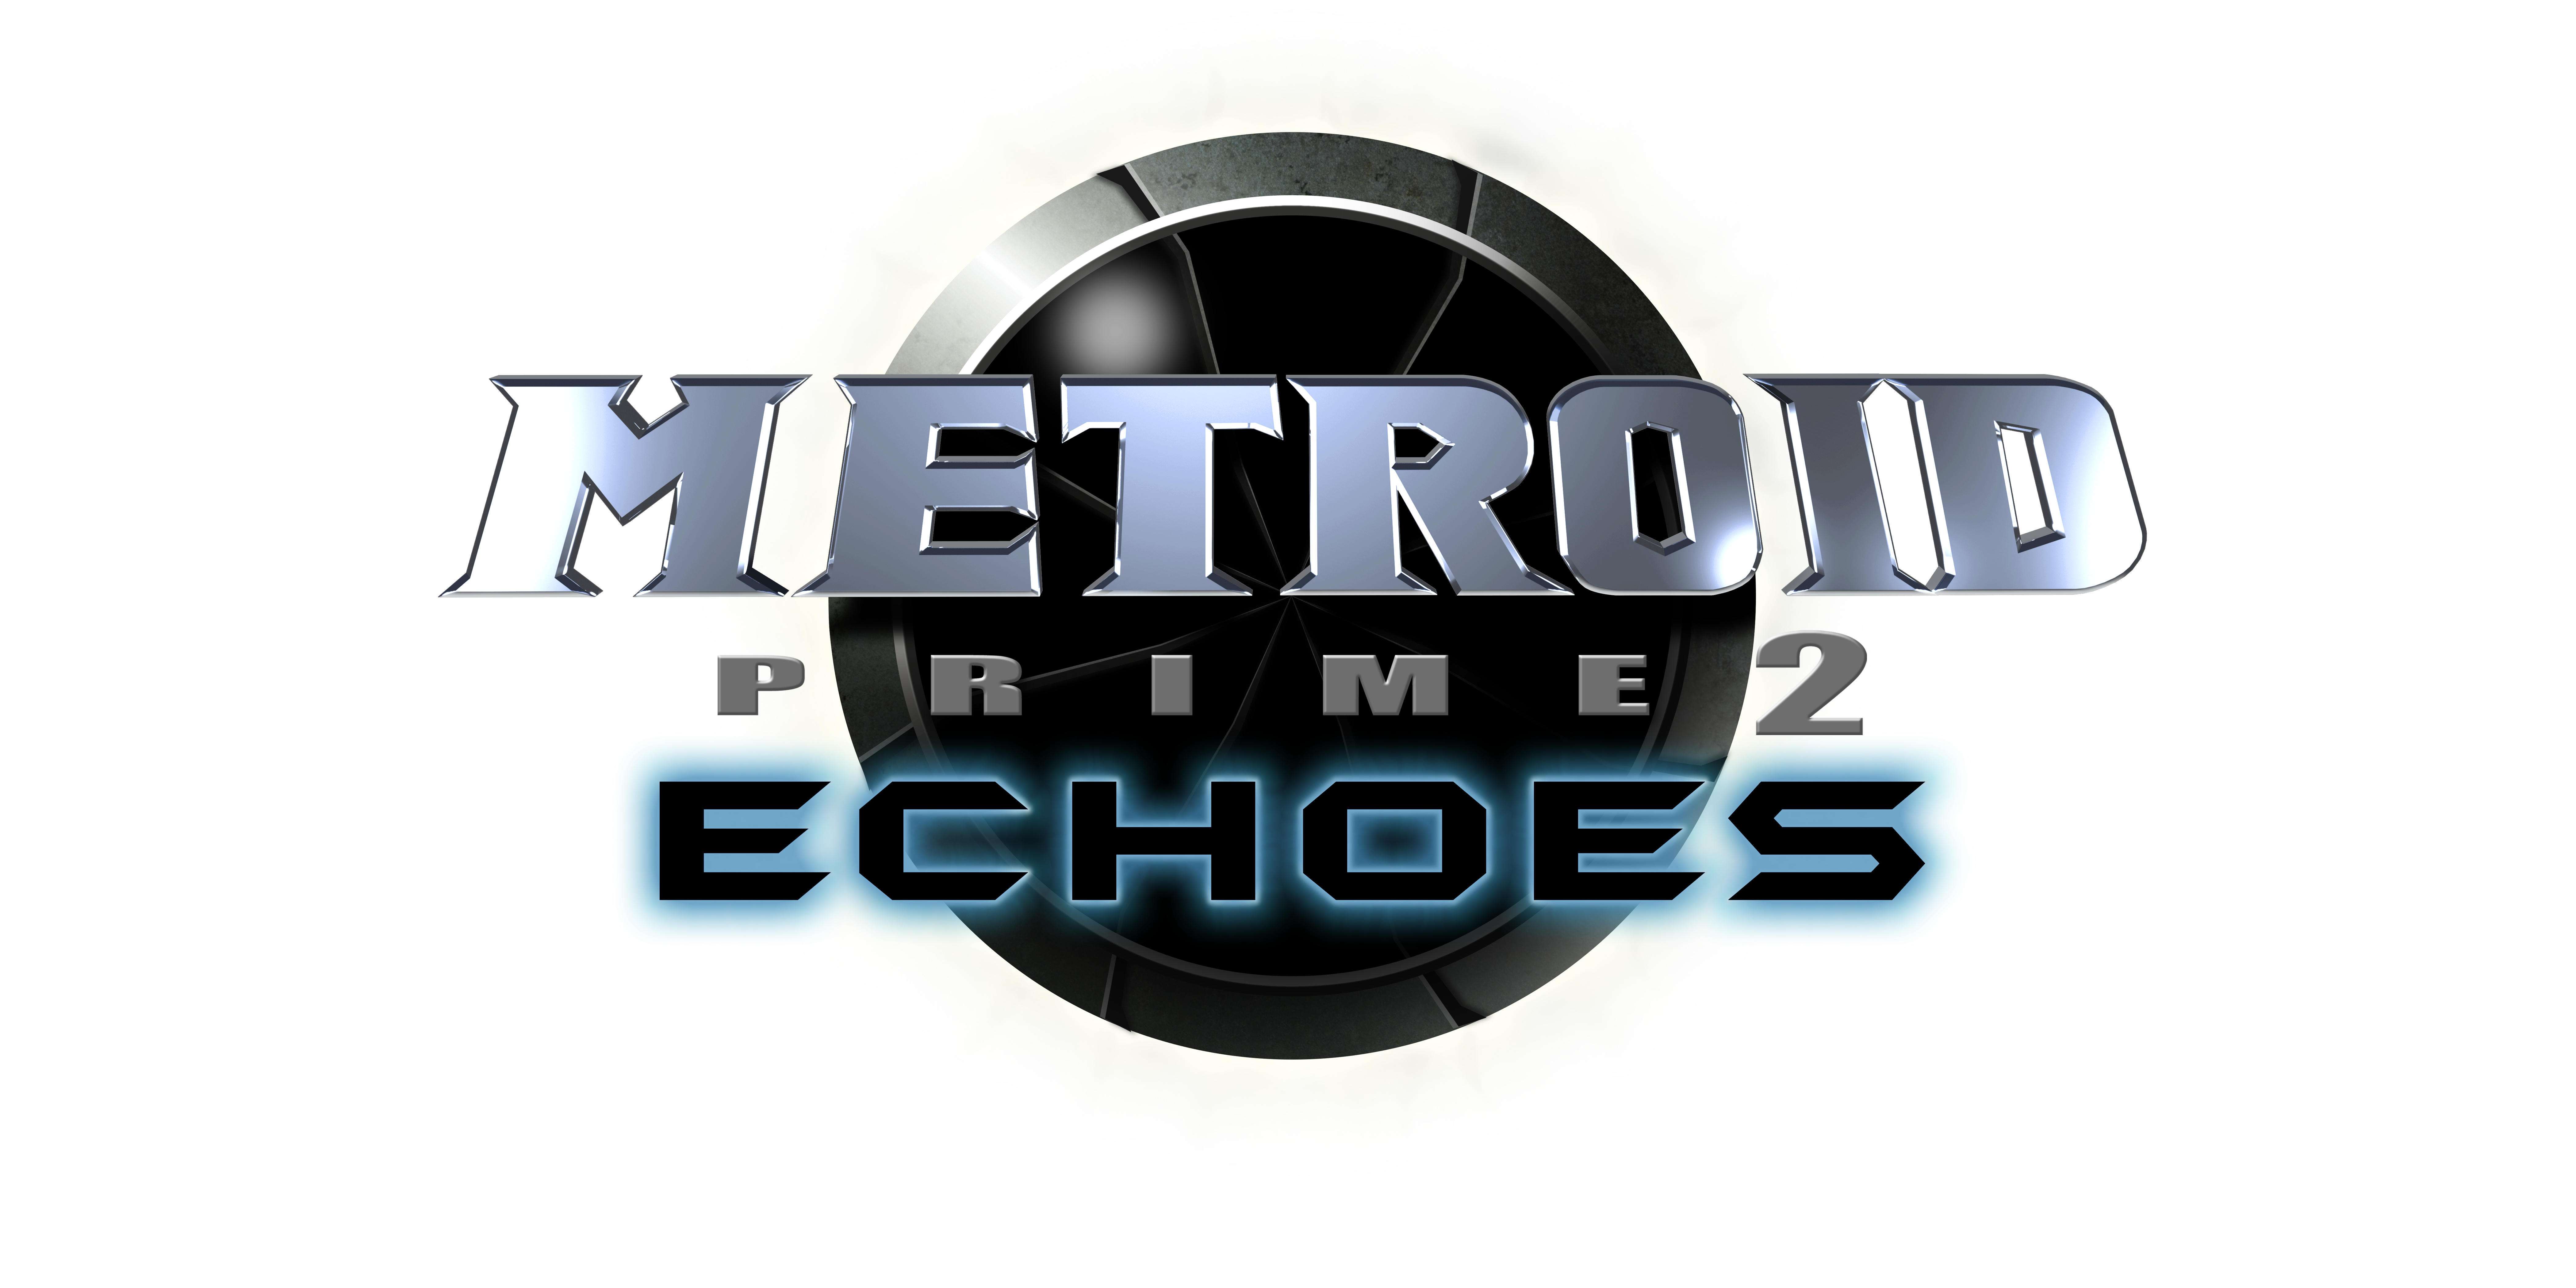 Metroid Prime Logo | www.pixshark.com - Images Galleries ...